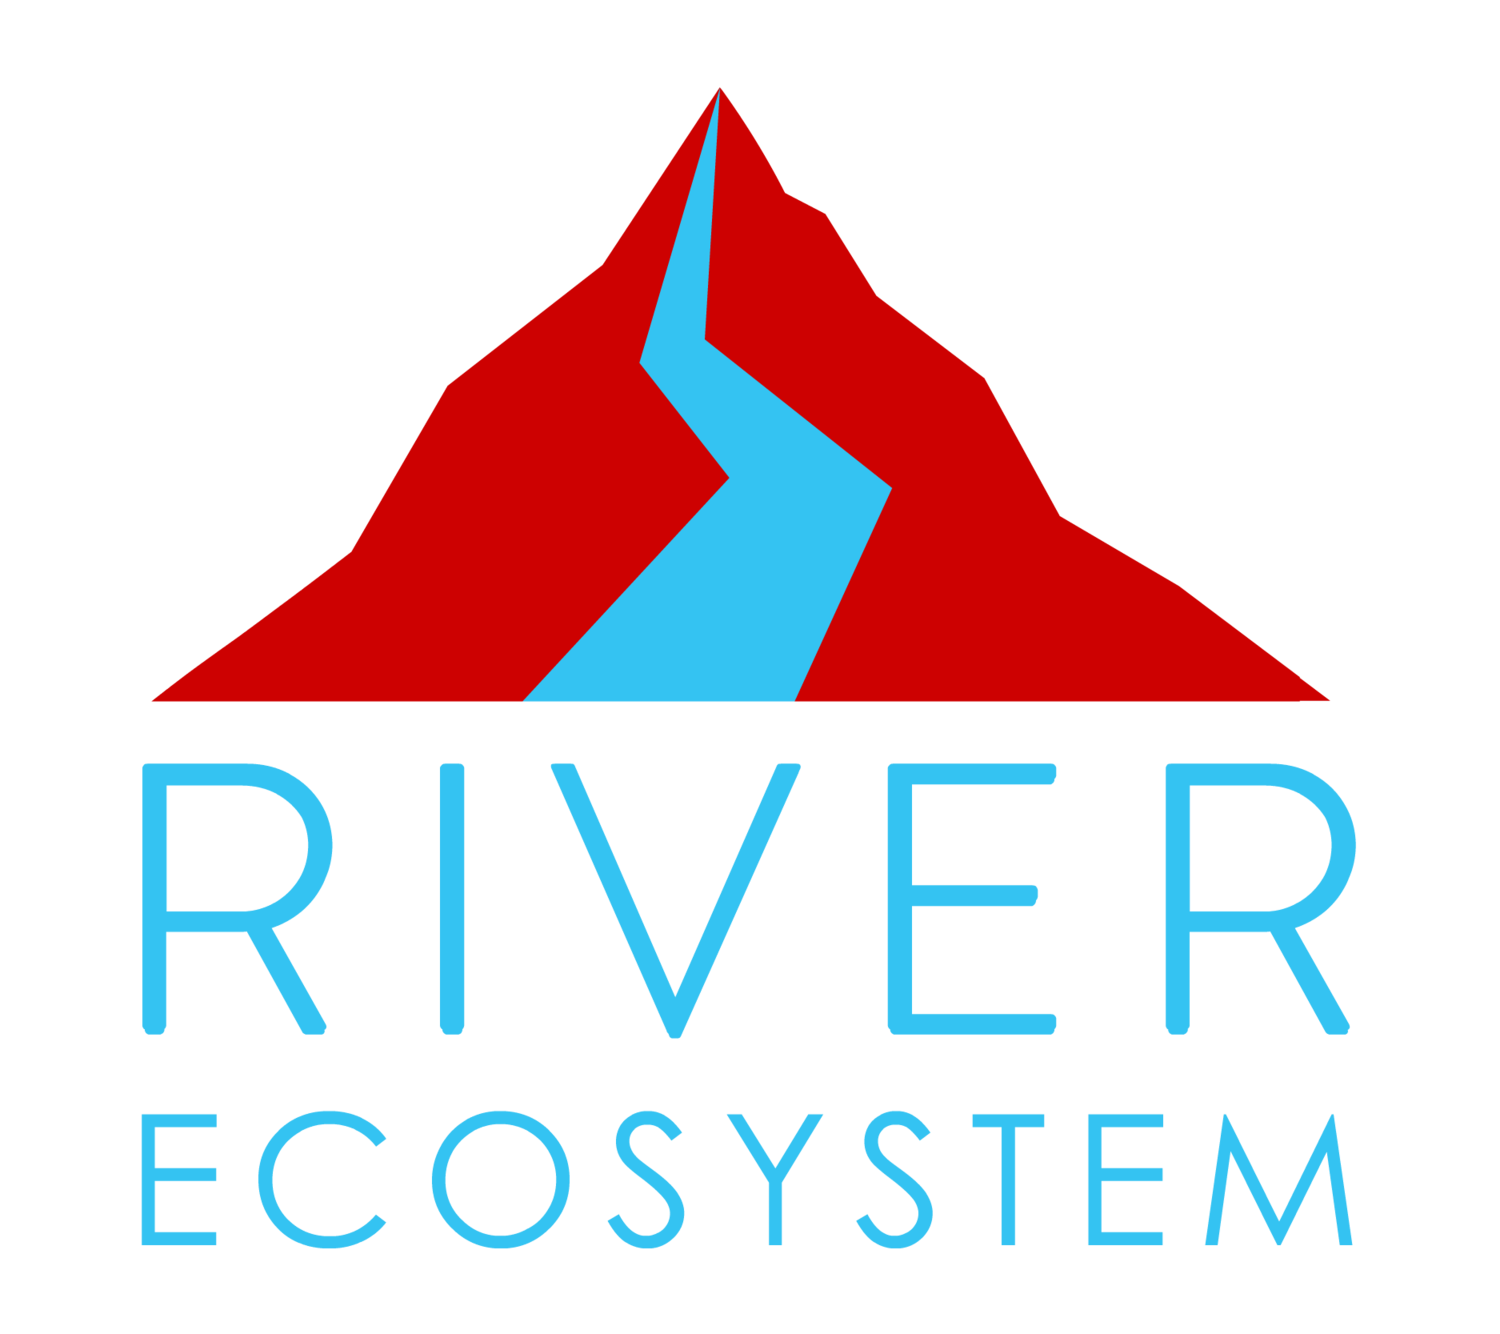 RIVER.CO